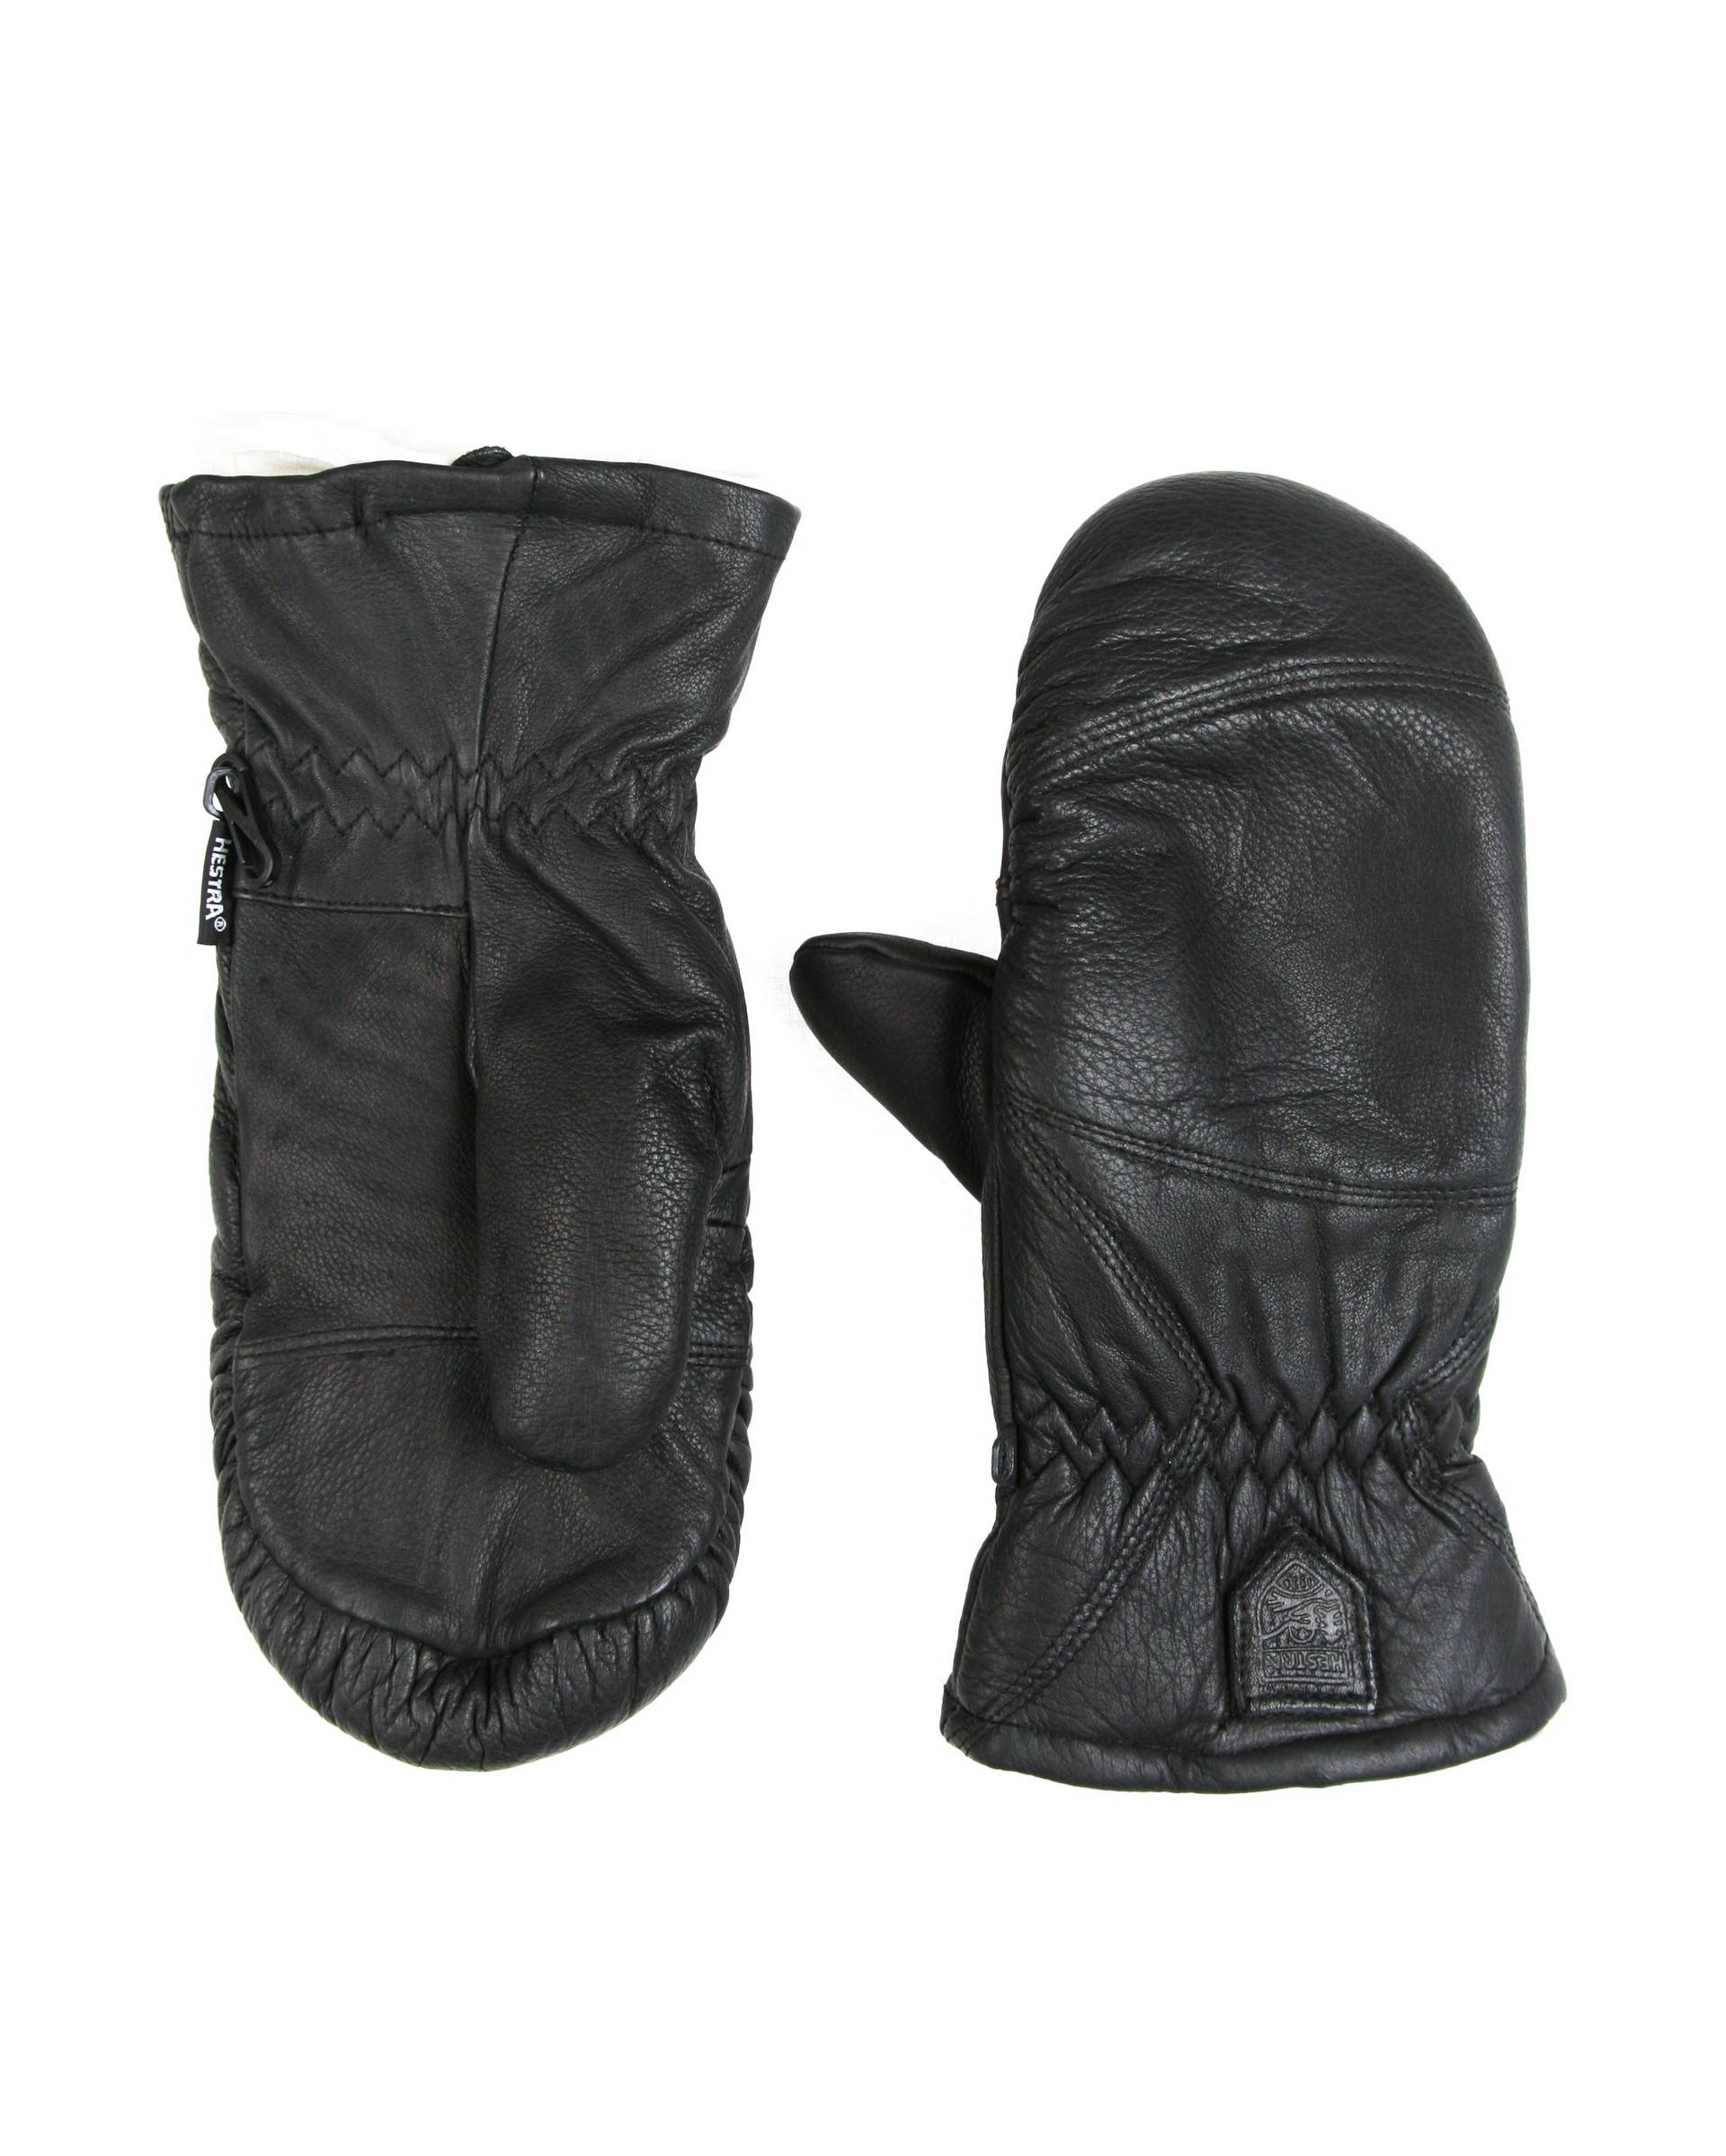 Варежки Hestra 3537 Black Leather Mitten